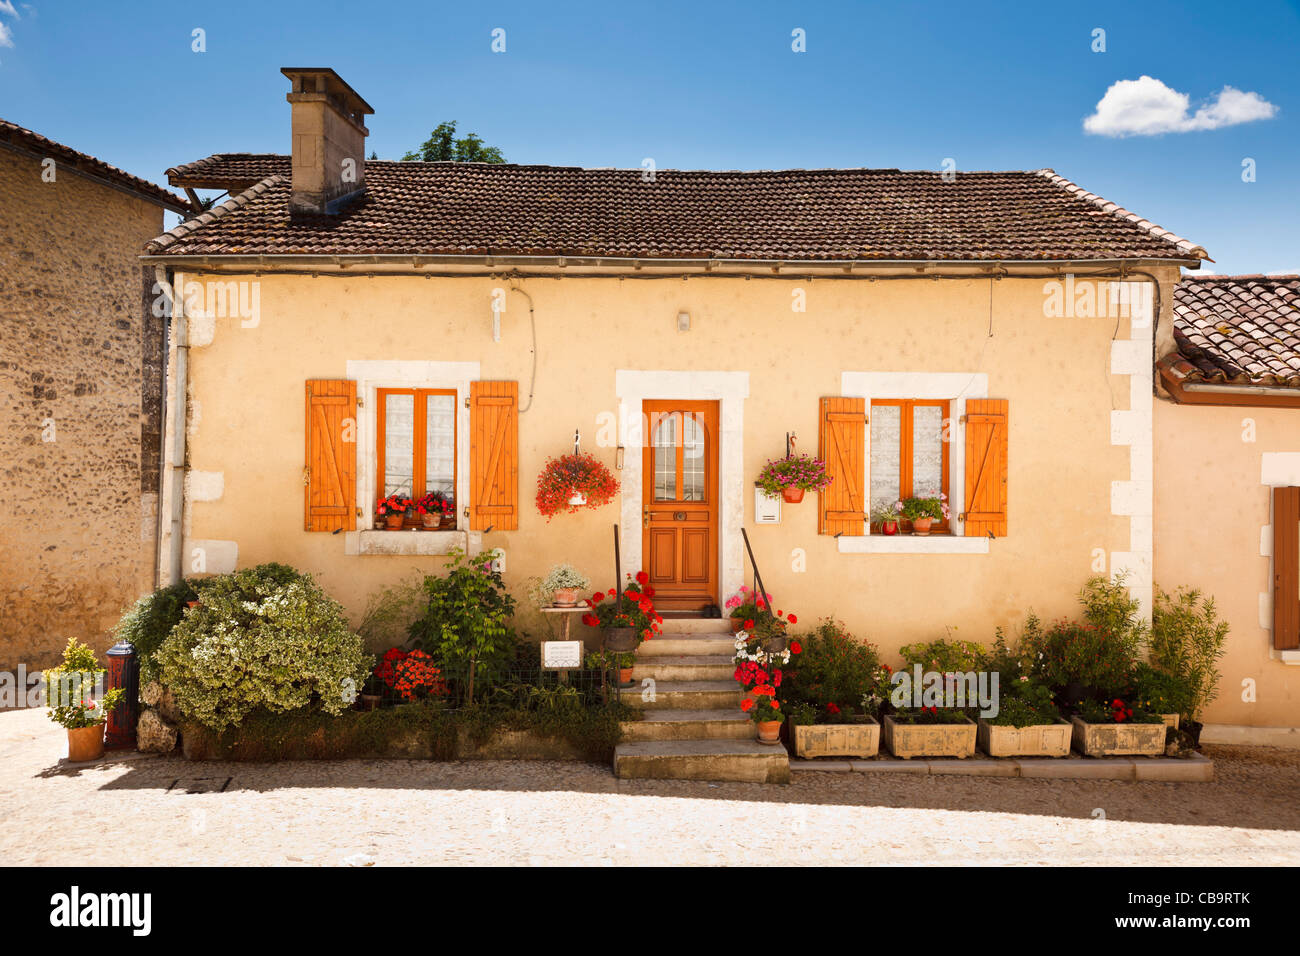 French house in Bourdeilles, Dordogne, France - Stock Image